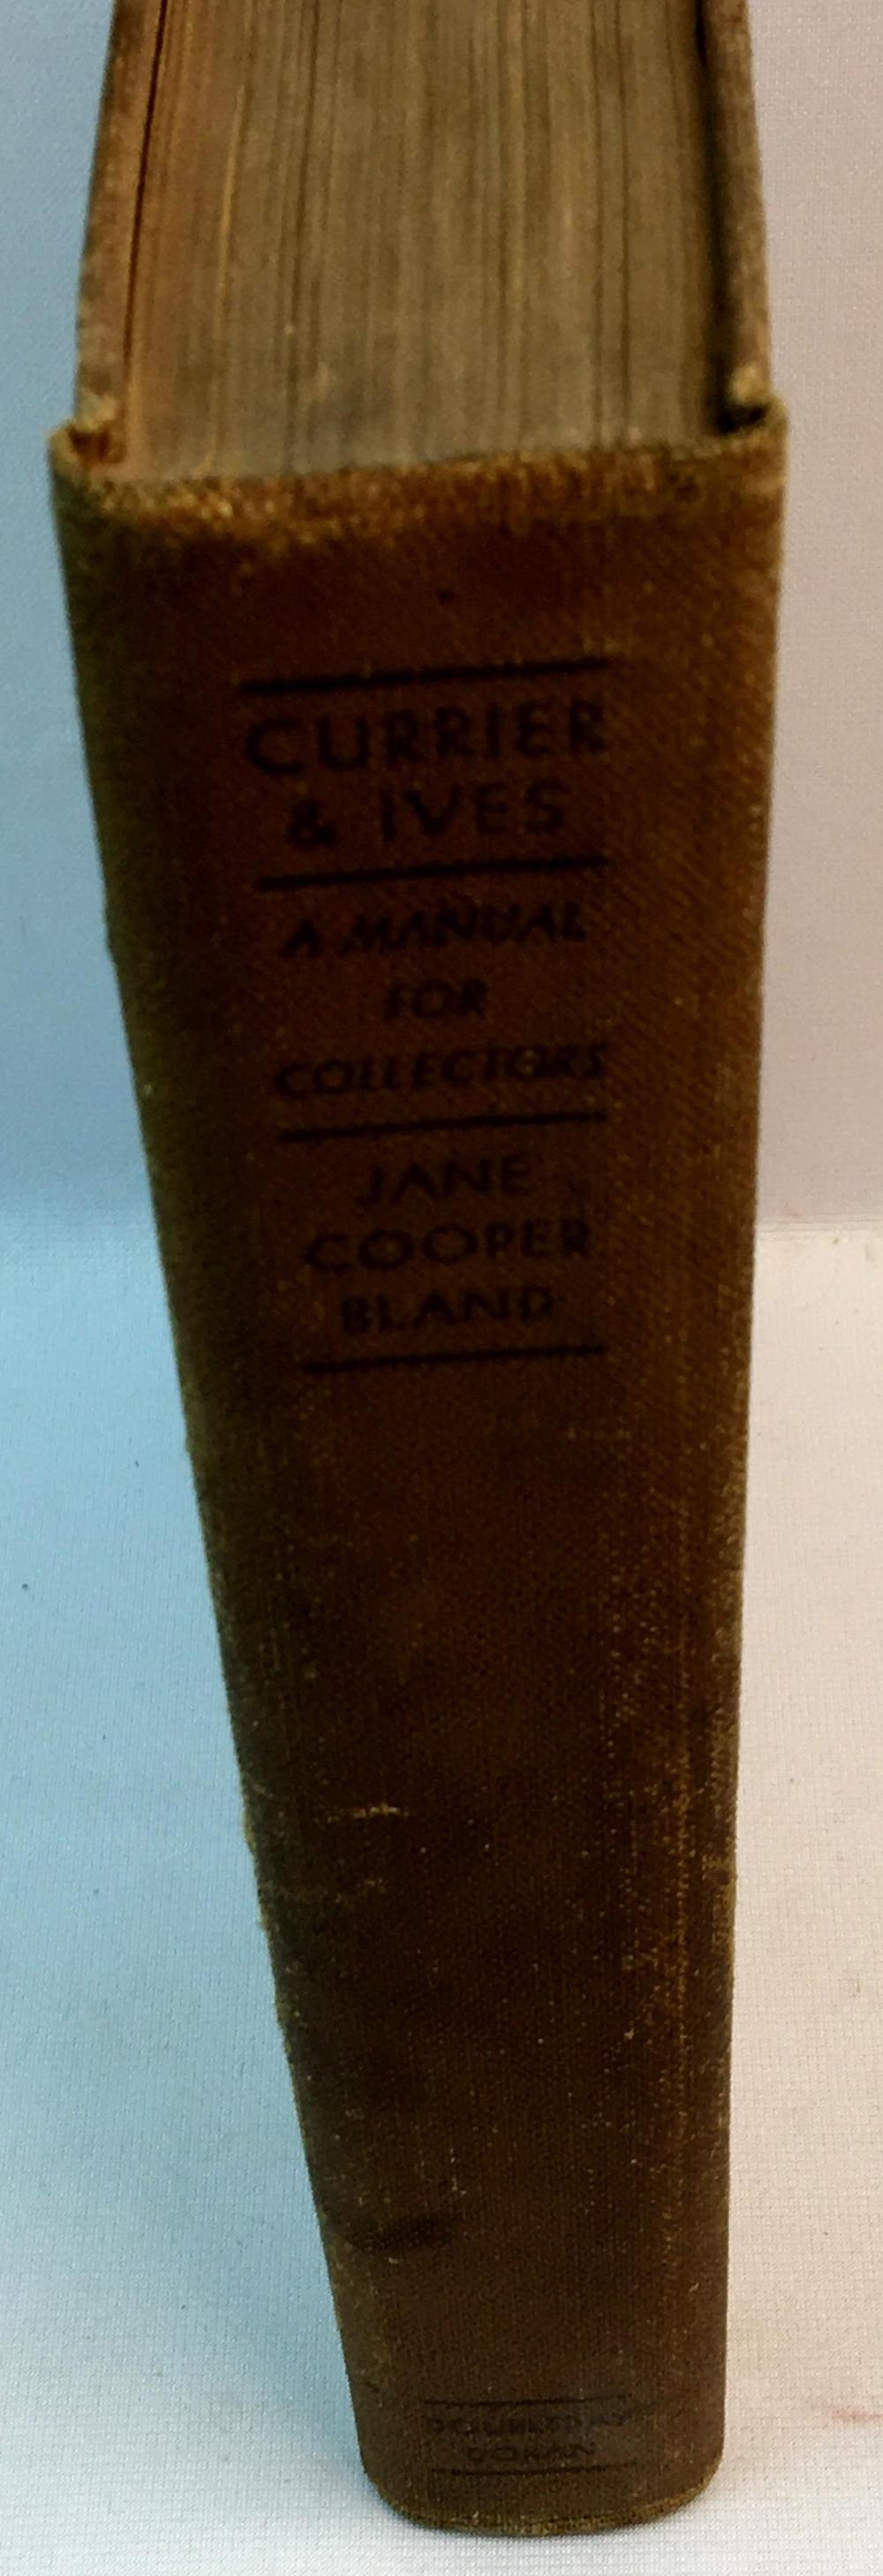 1931 Currier & Ives A Manual For Collectors by Jane Cooper Bland FIRST EDITION